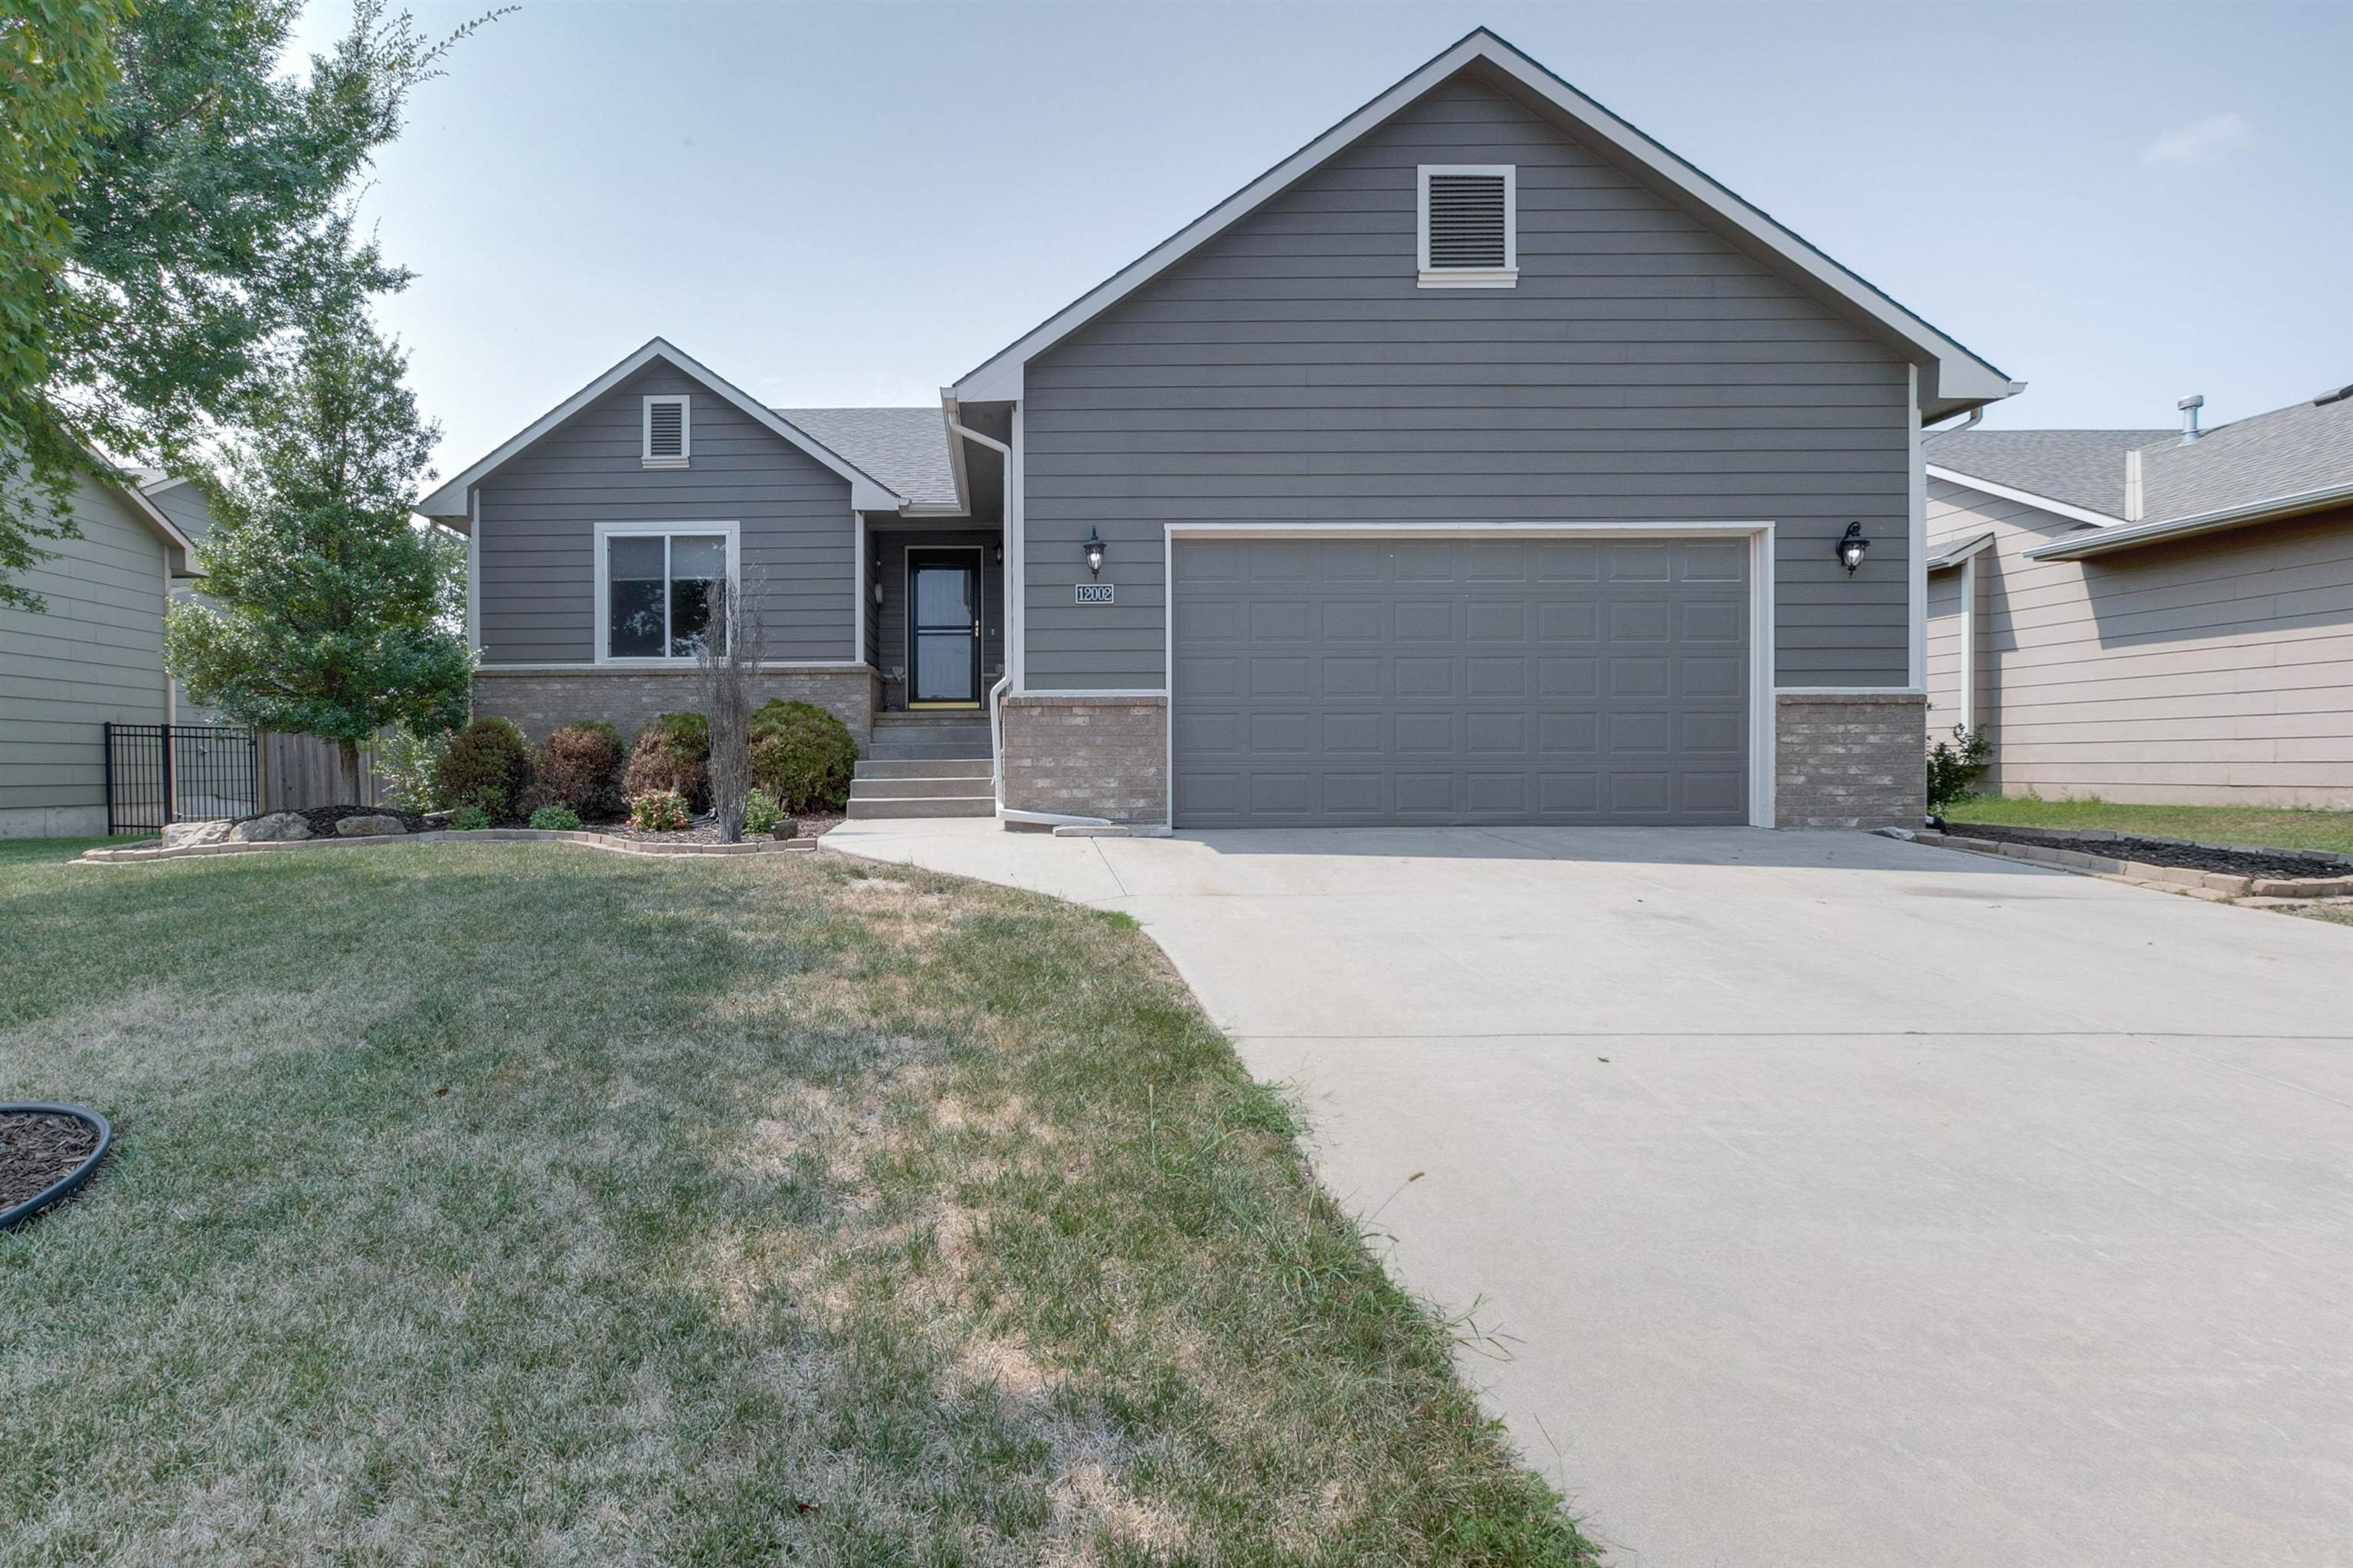 Come see this beautiful home today!  Arriving at this home, you'll enjoy the curb appeal of a wonder